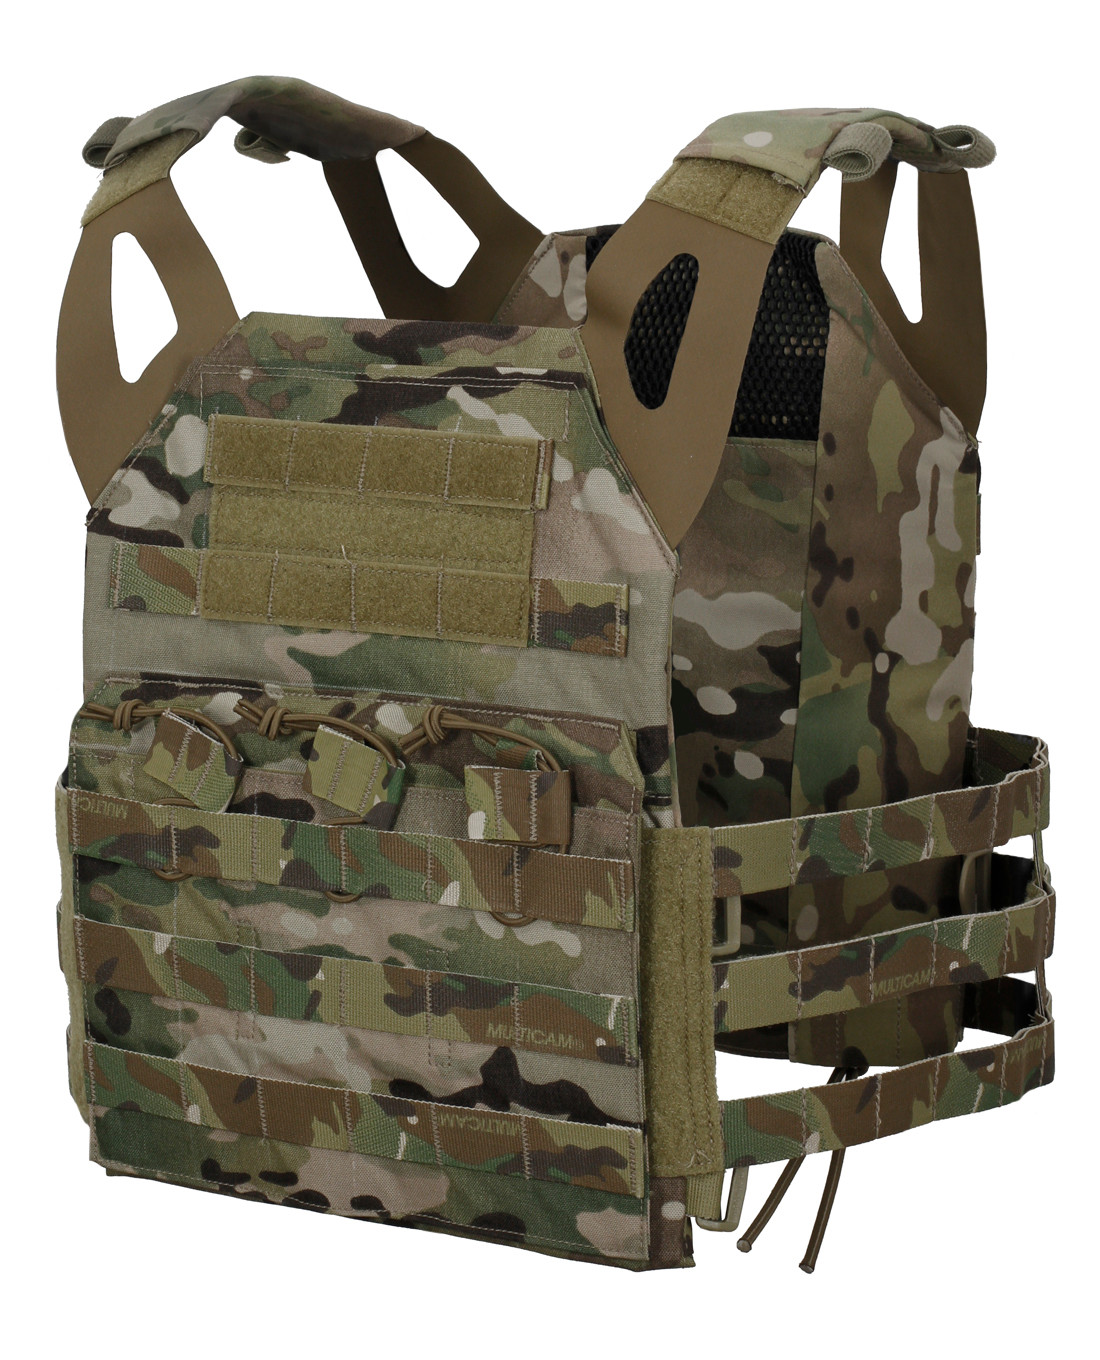 Backpack Over Plate Carrier